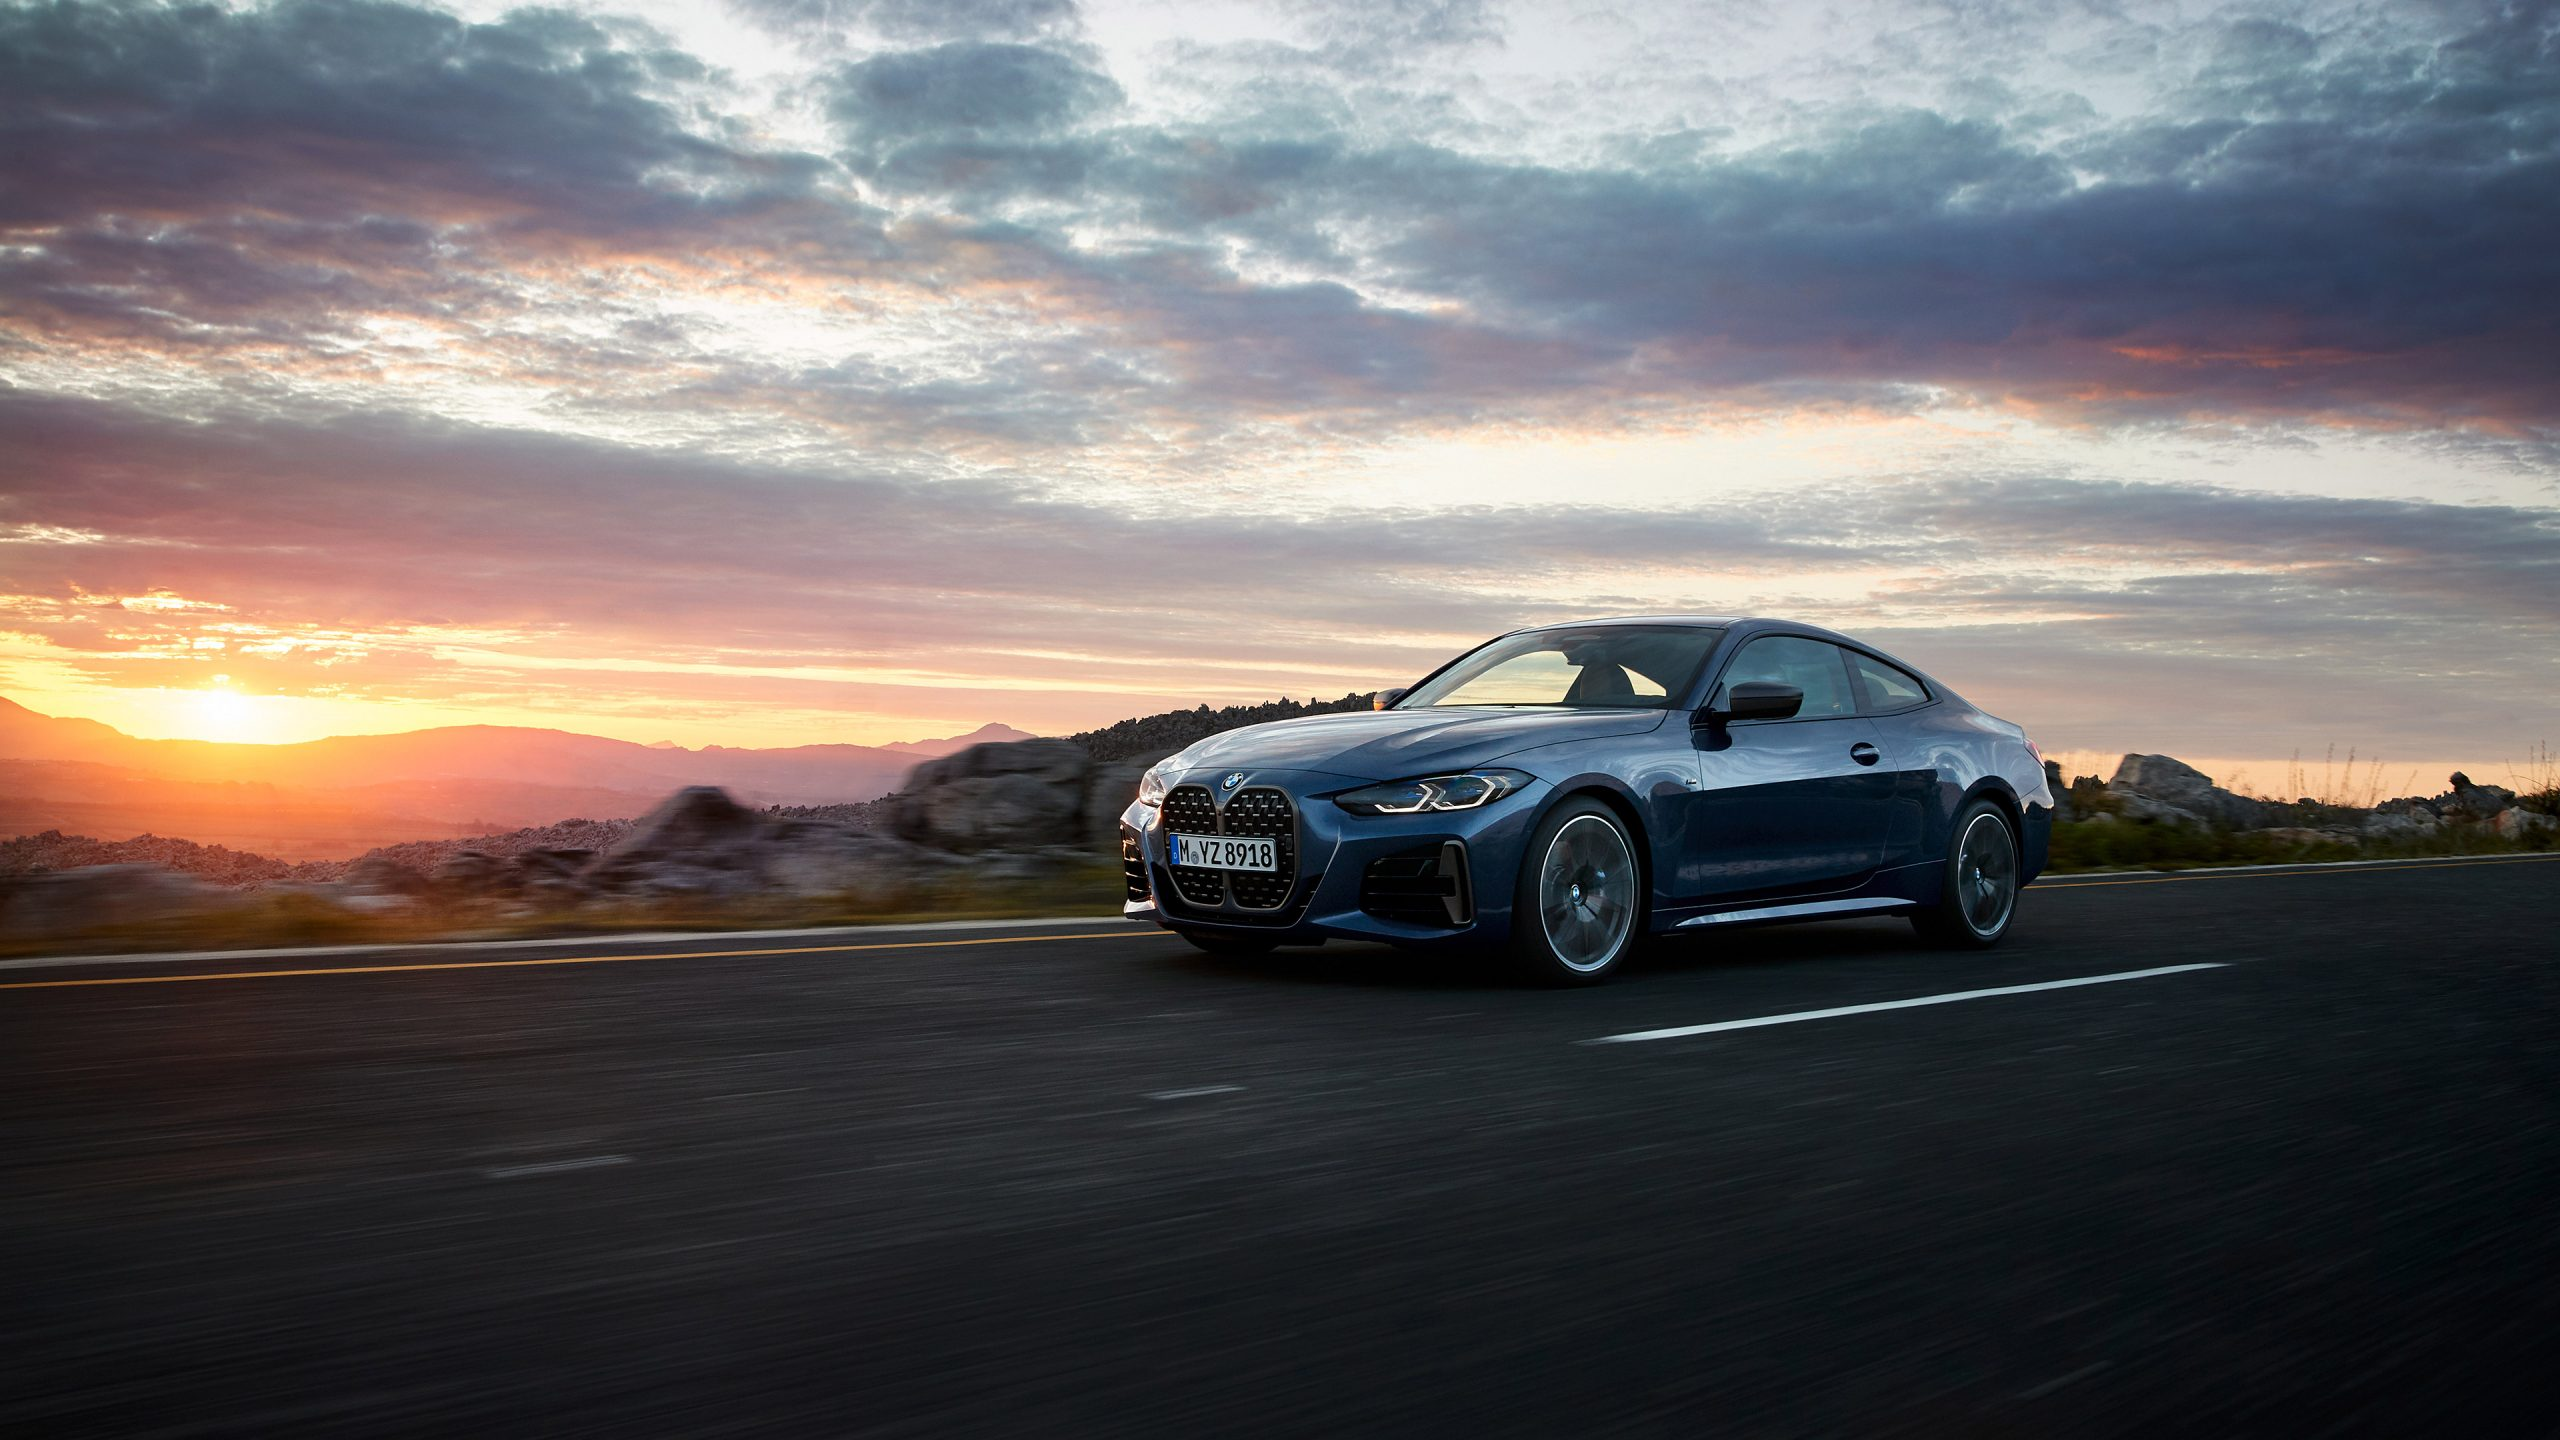 2021 BMW 4-Series Wallpapers   SuperCars.net